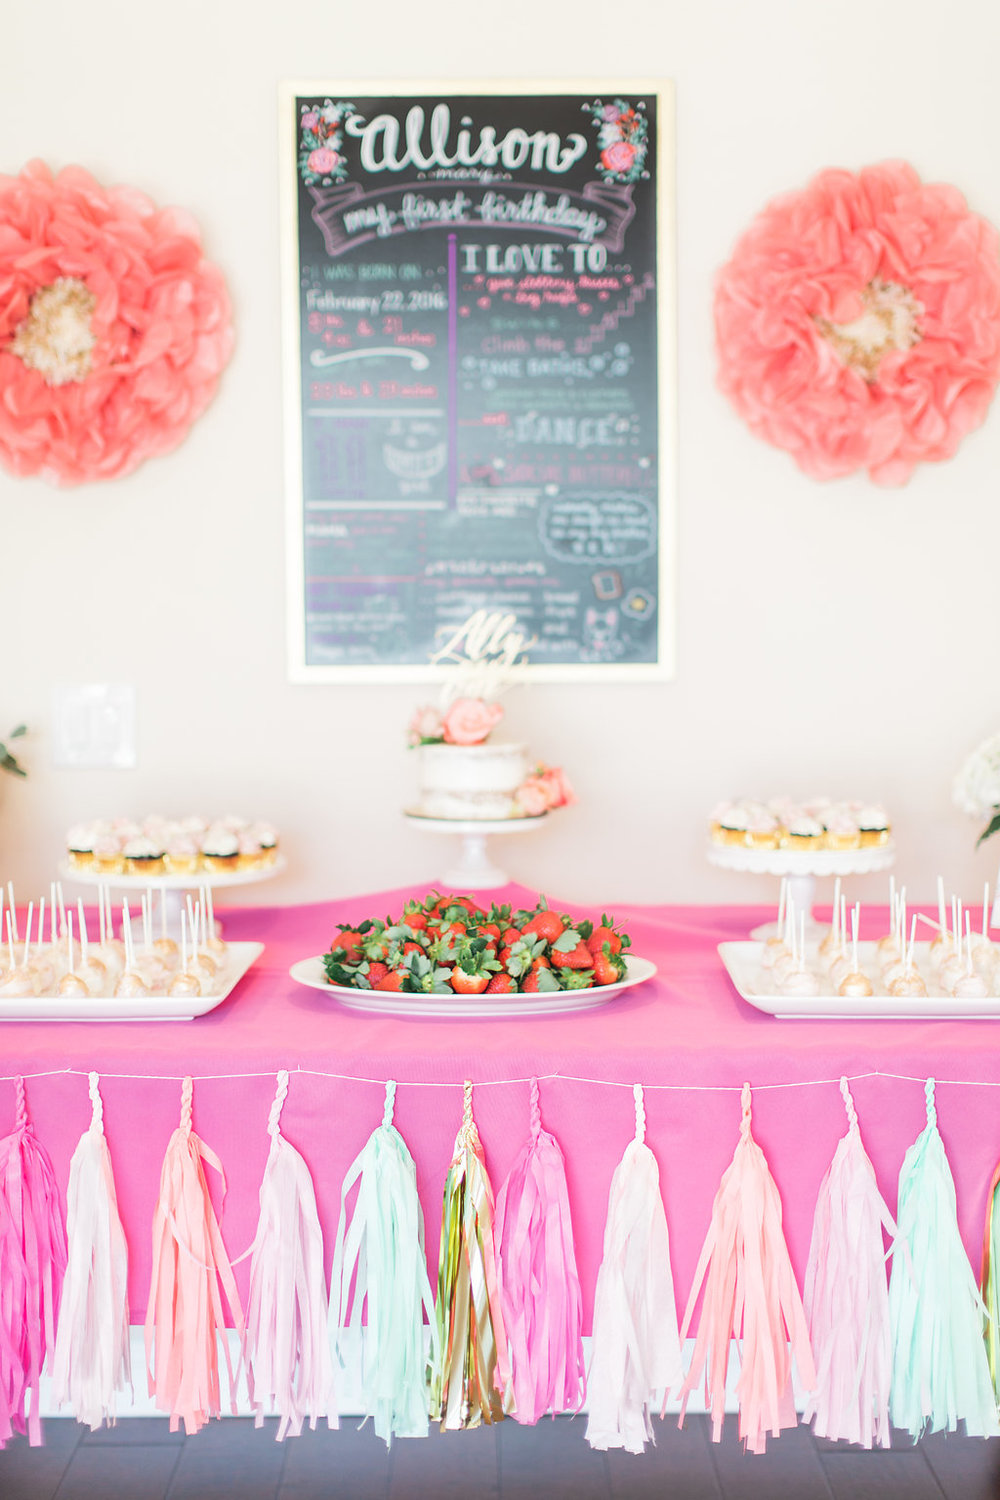 One can never have too many paper tassels or decorations. This dessert table is festive without being over the top with a tassel banner in pink, coral, turquoise and gold. Big, poufy  paper flowers  were scattered throughout the party.